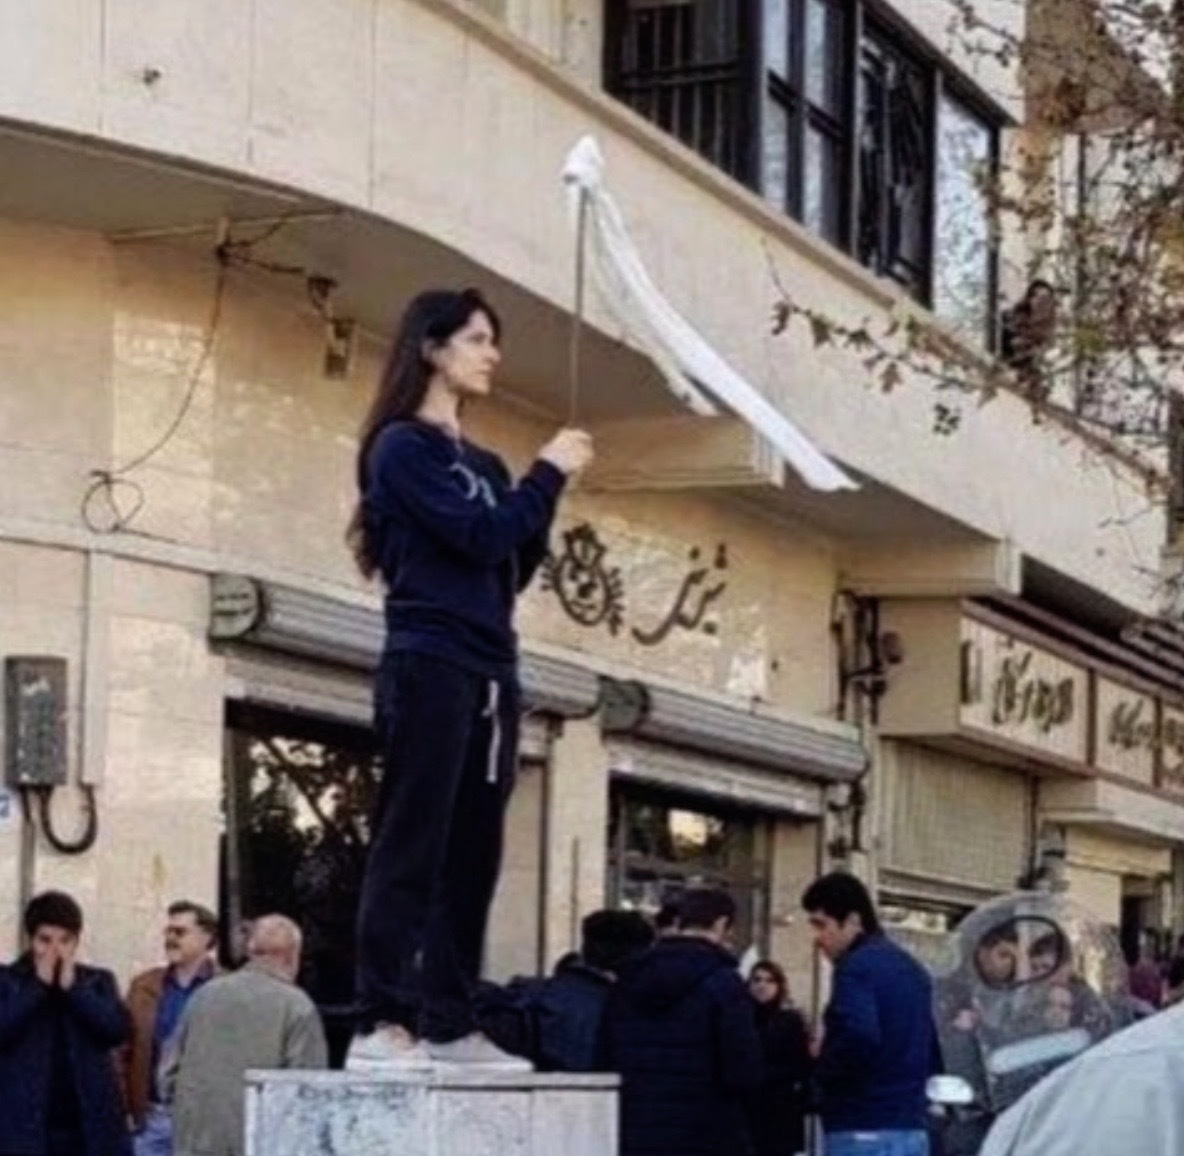 More Women Are Protesting Hijab In Iran. This Time, The World Is Listening.